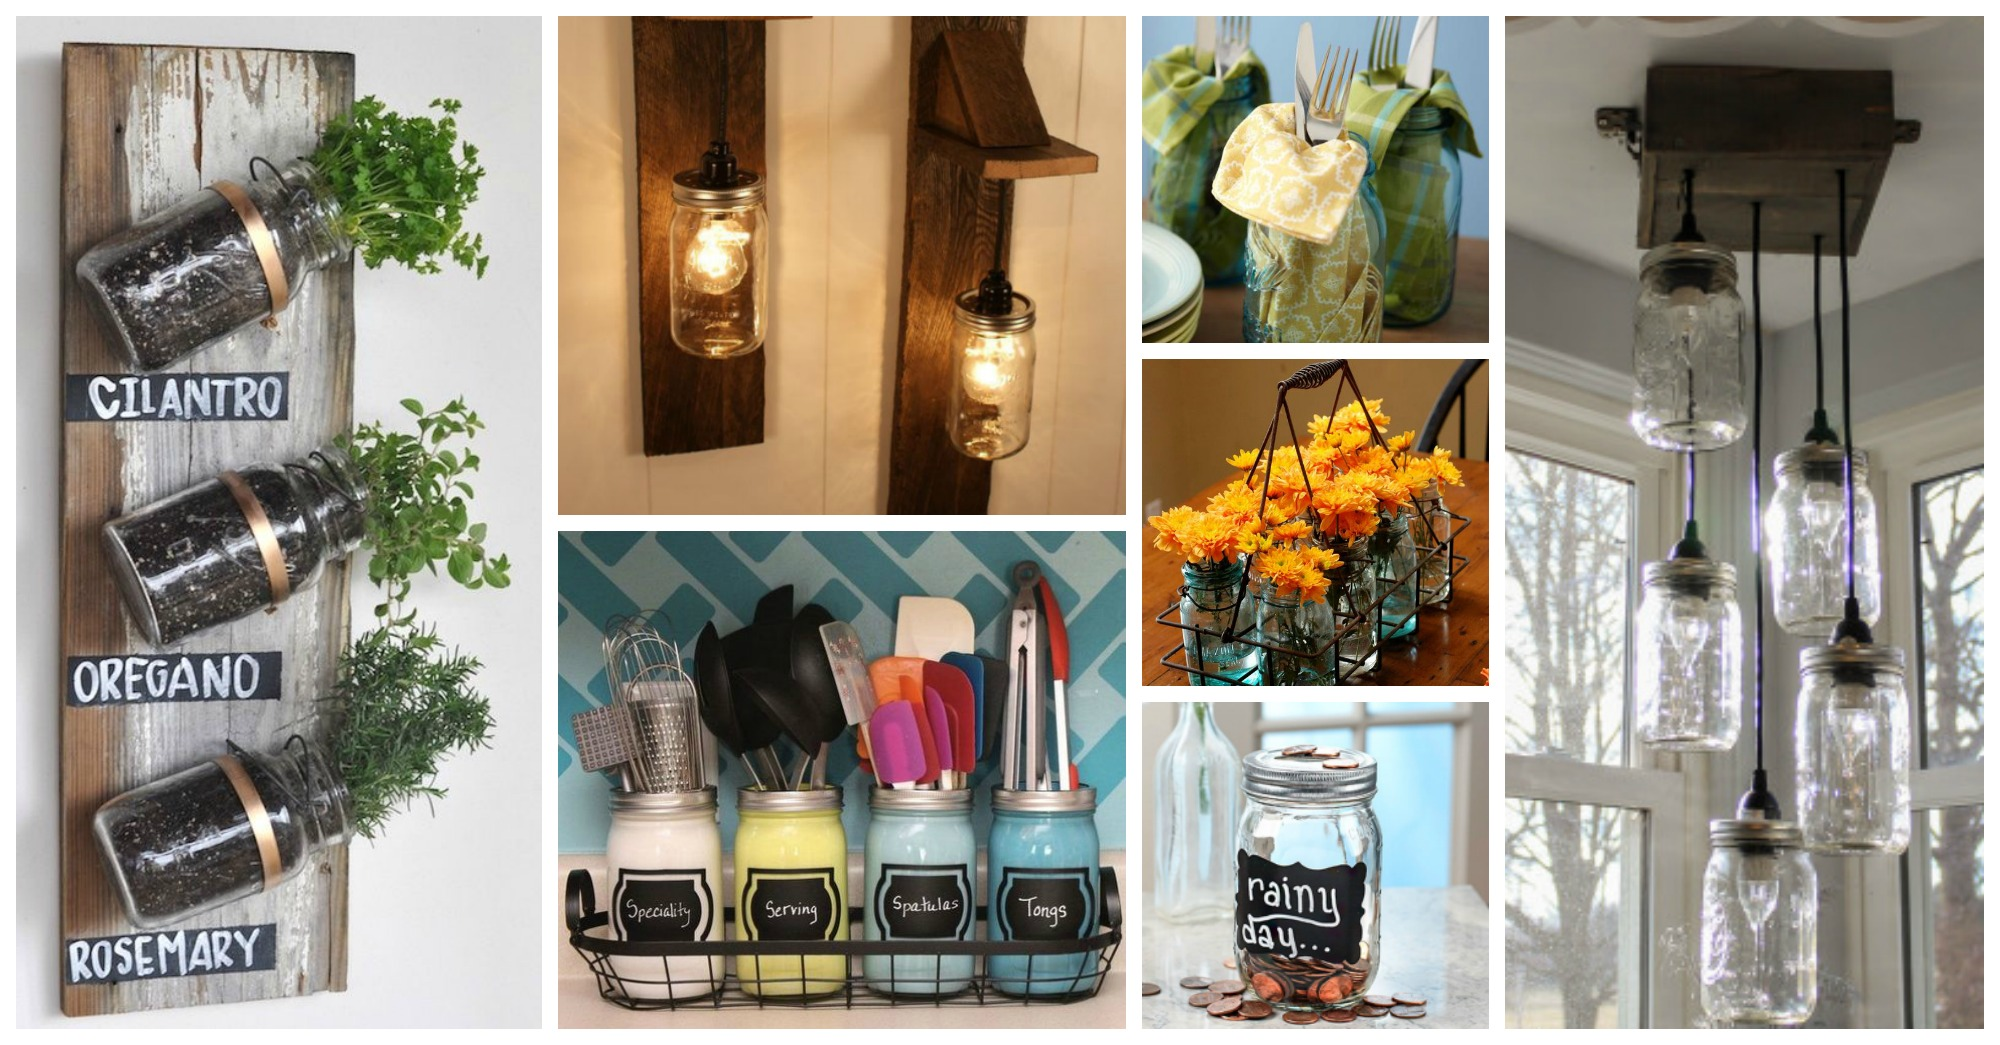 10 Fun Ways to Use Mason Jars in Your Home Decor